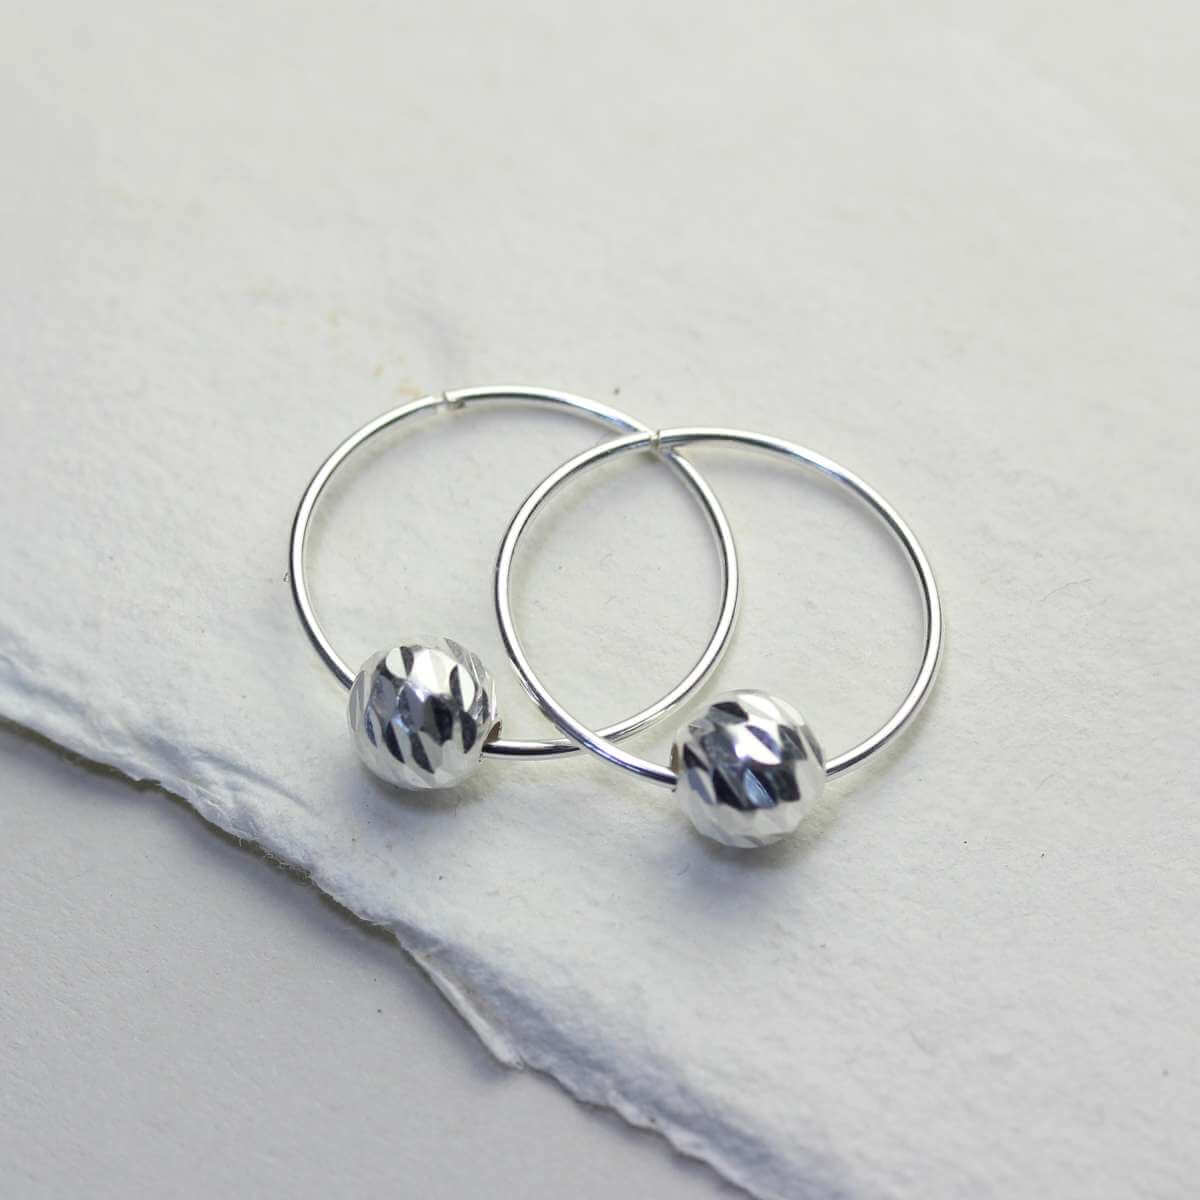 Sterling Silver 18mm Hoop Earrings with Diamond Cut Ball Beads